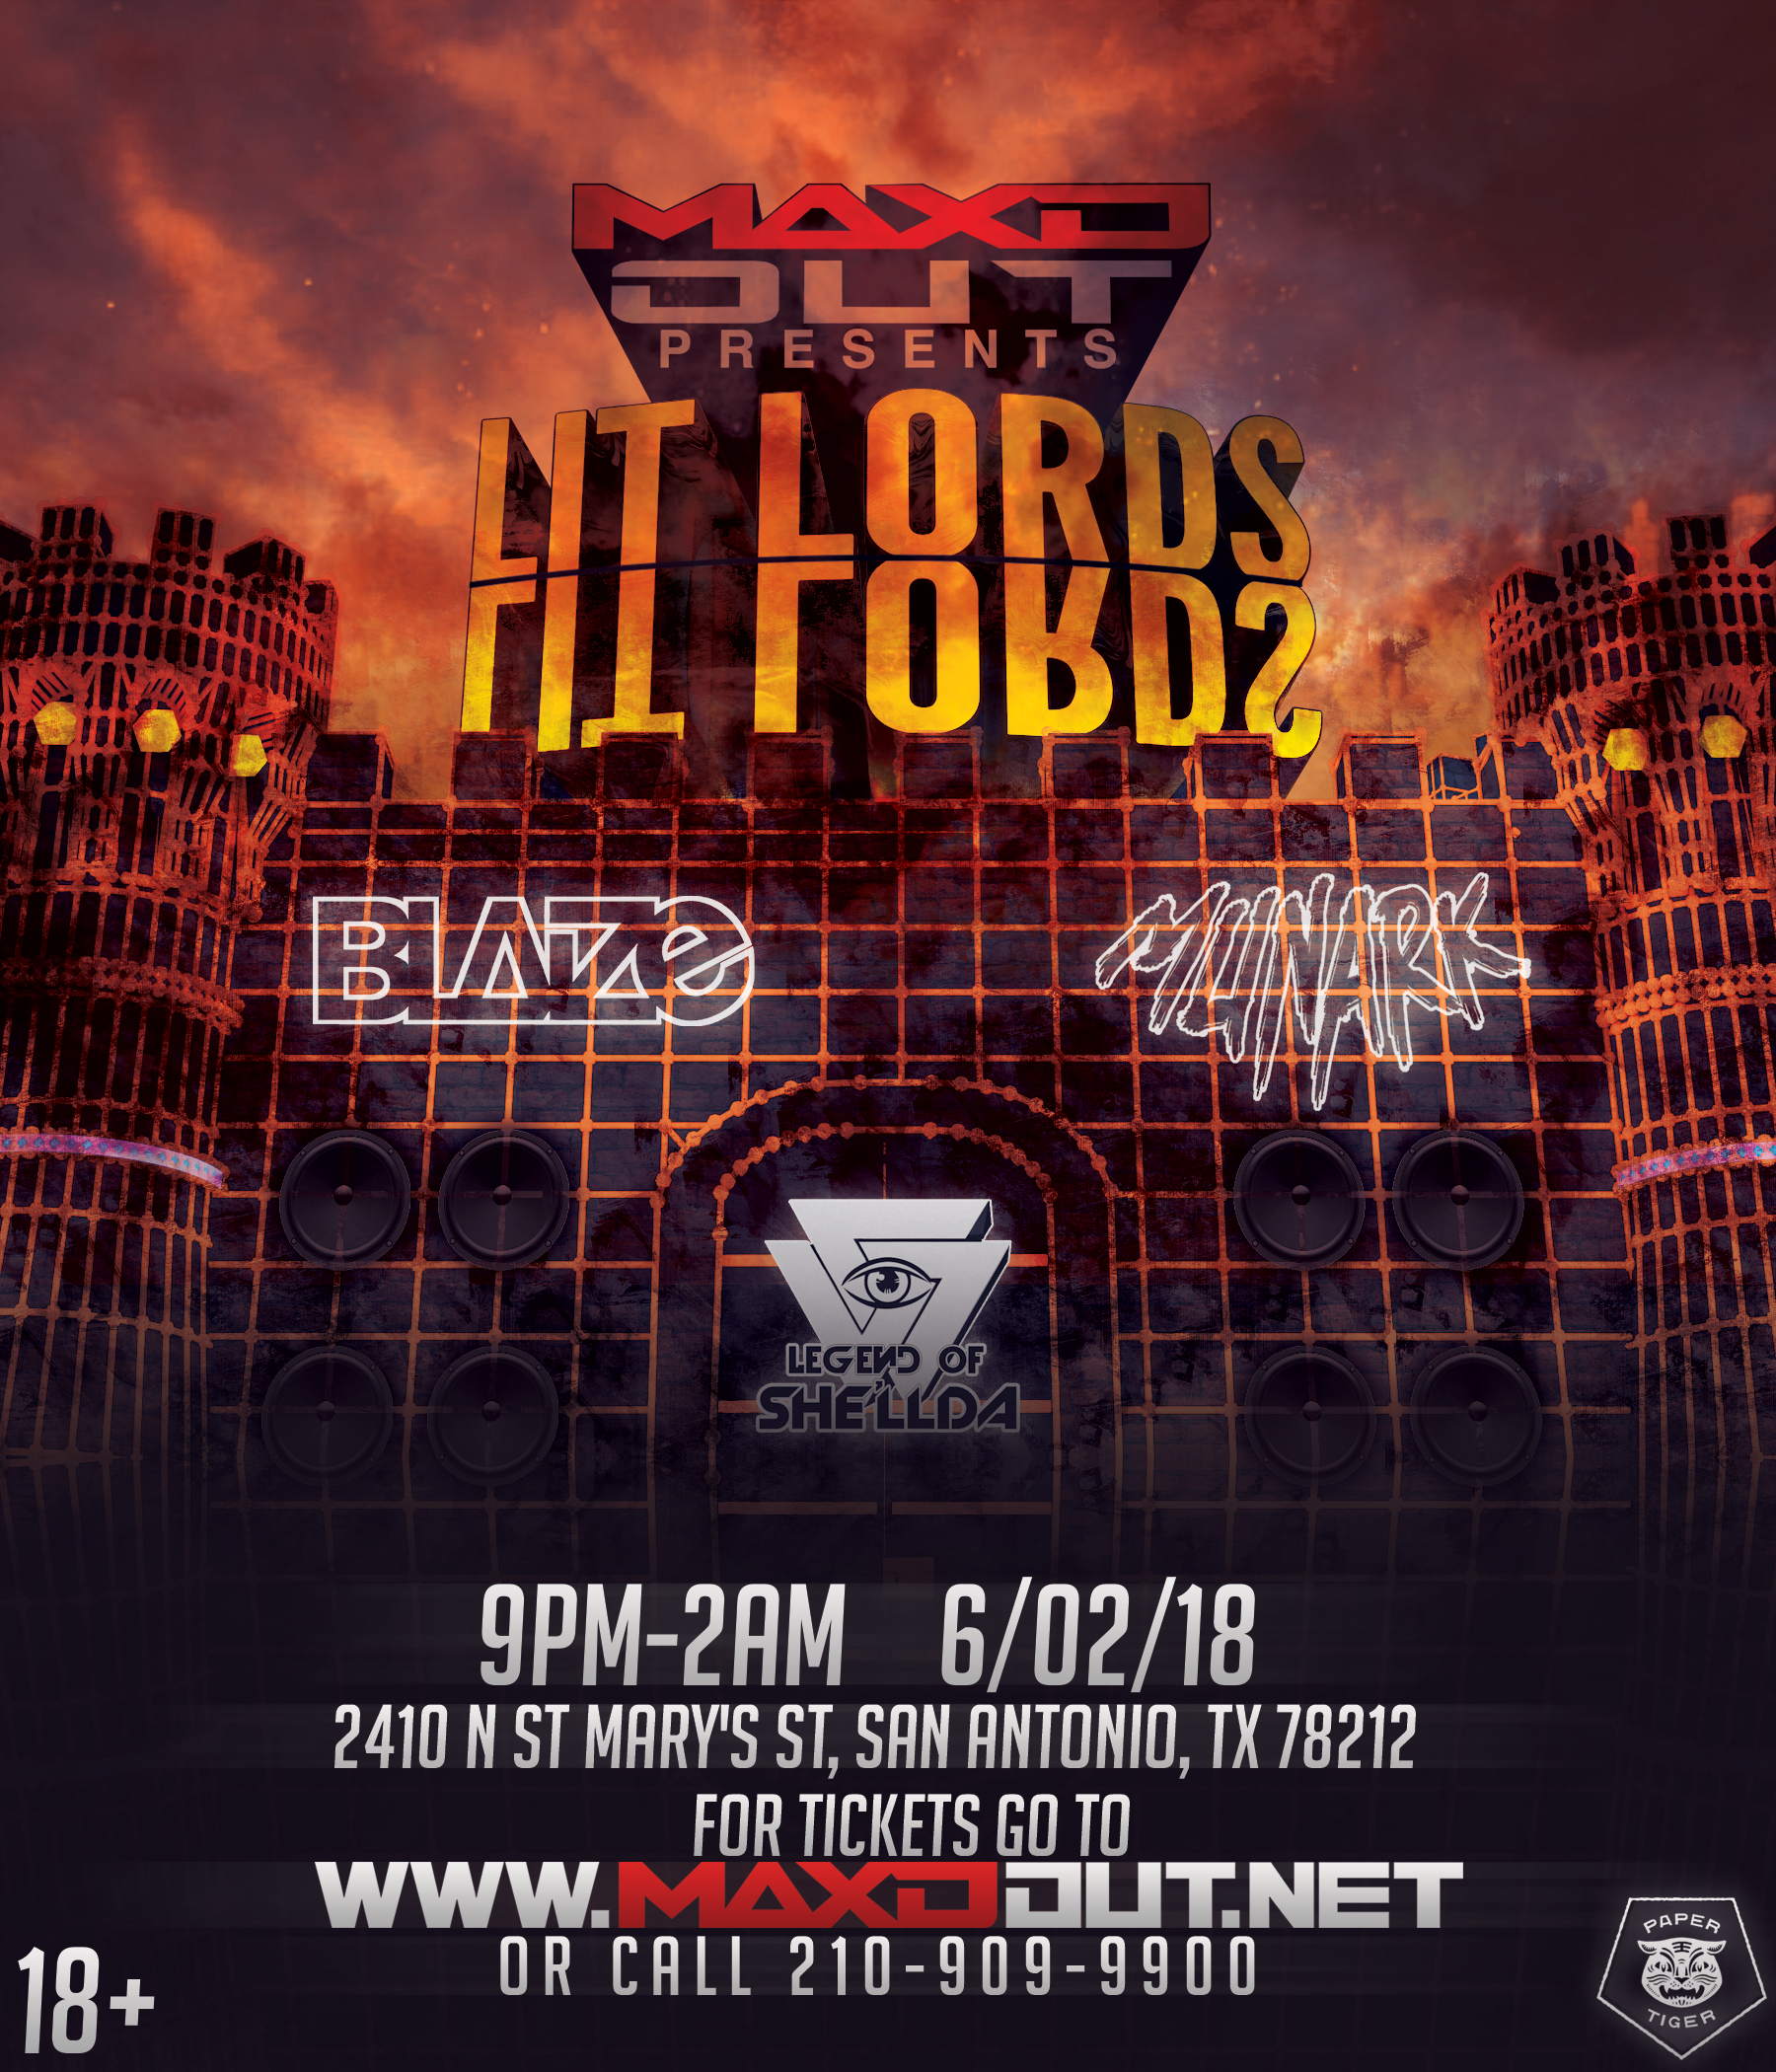 maxdout-LitLords-Flyer.png